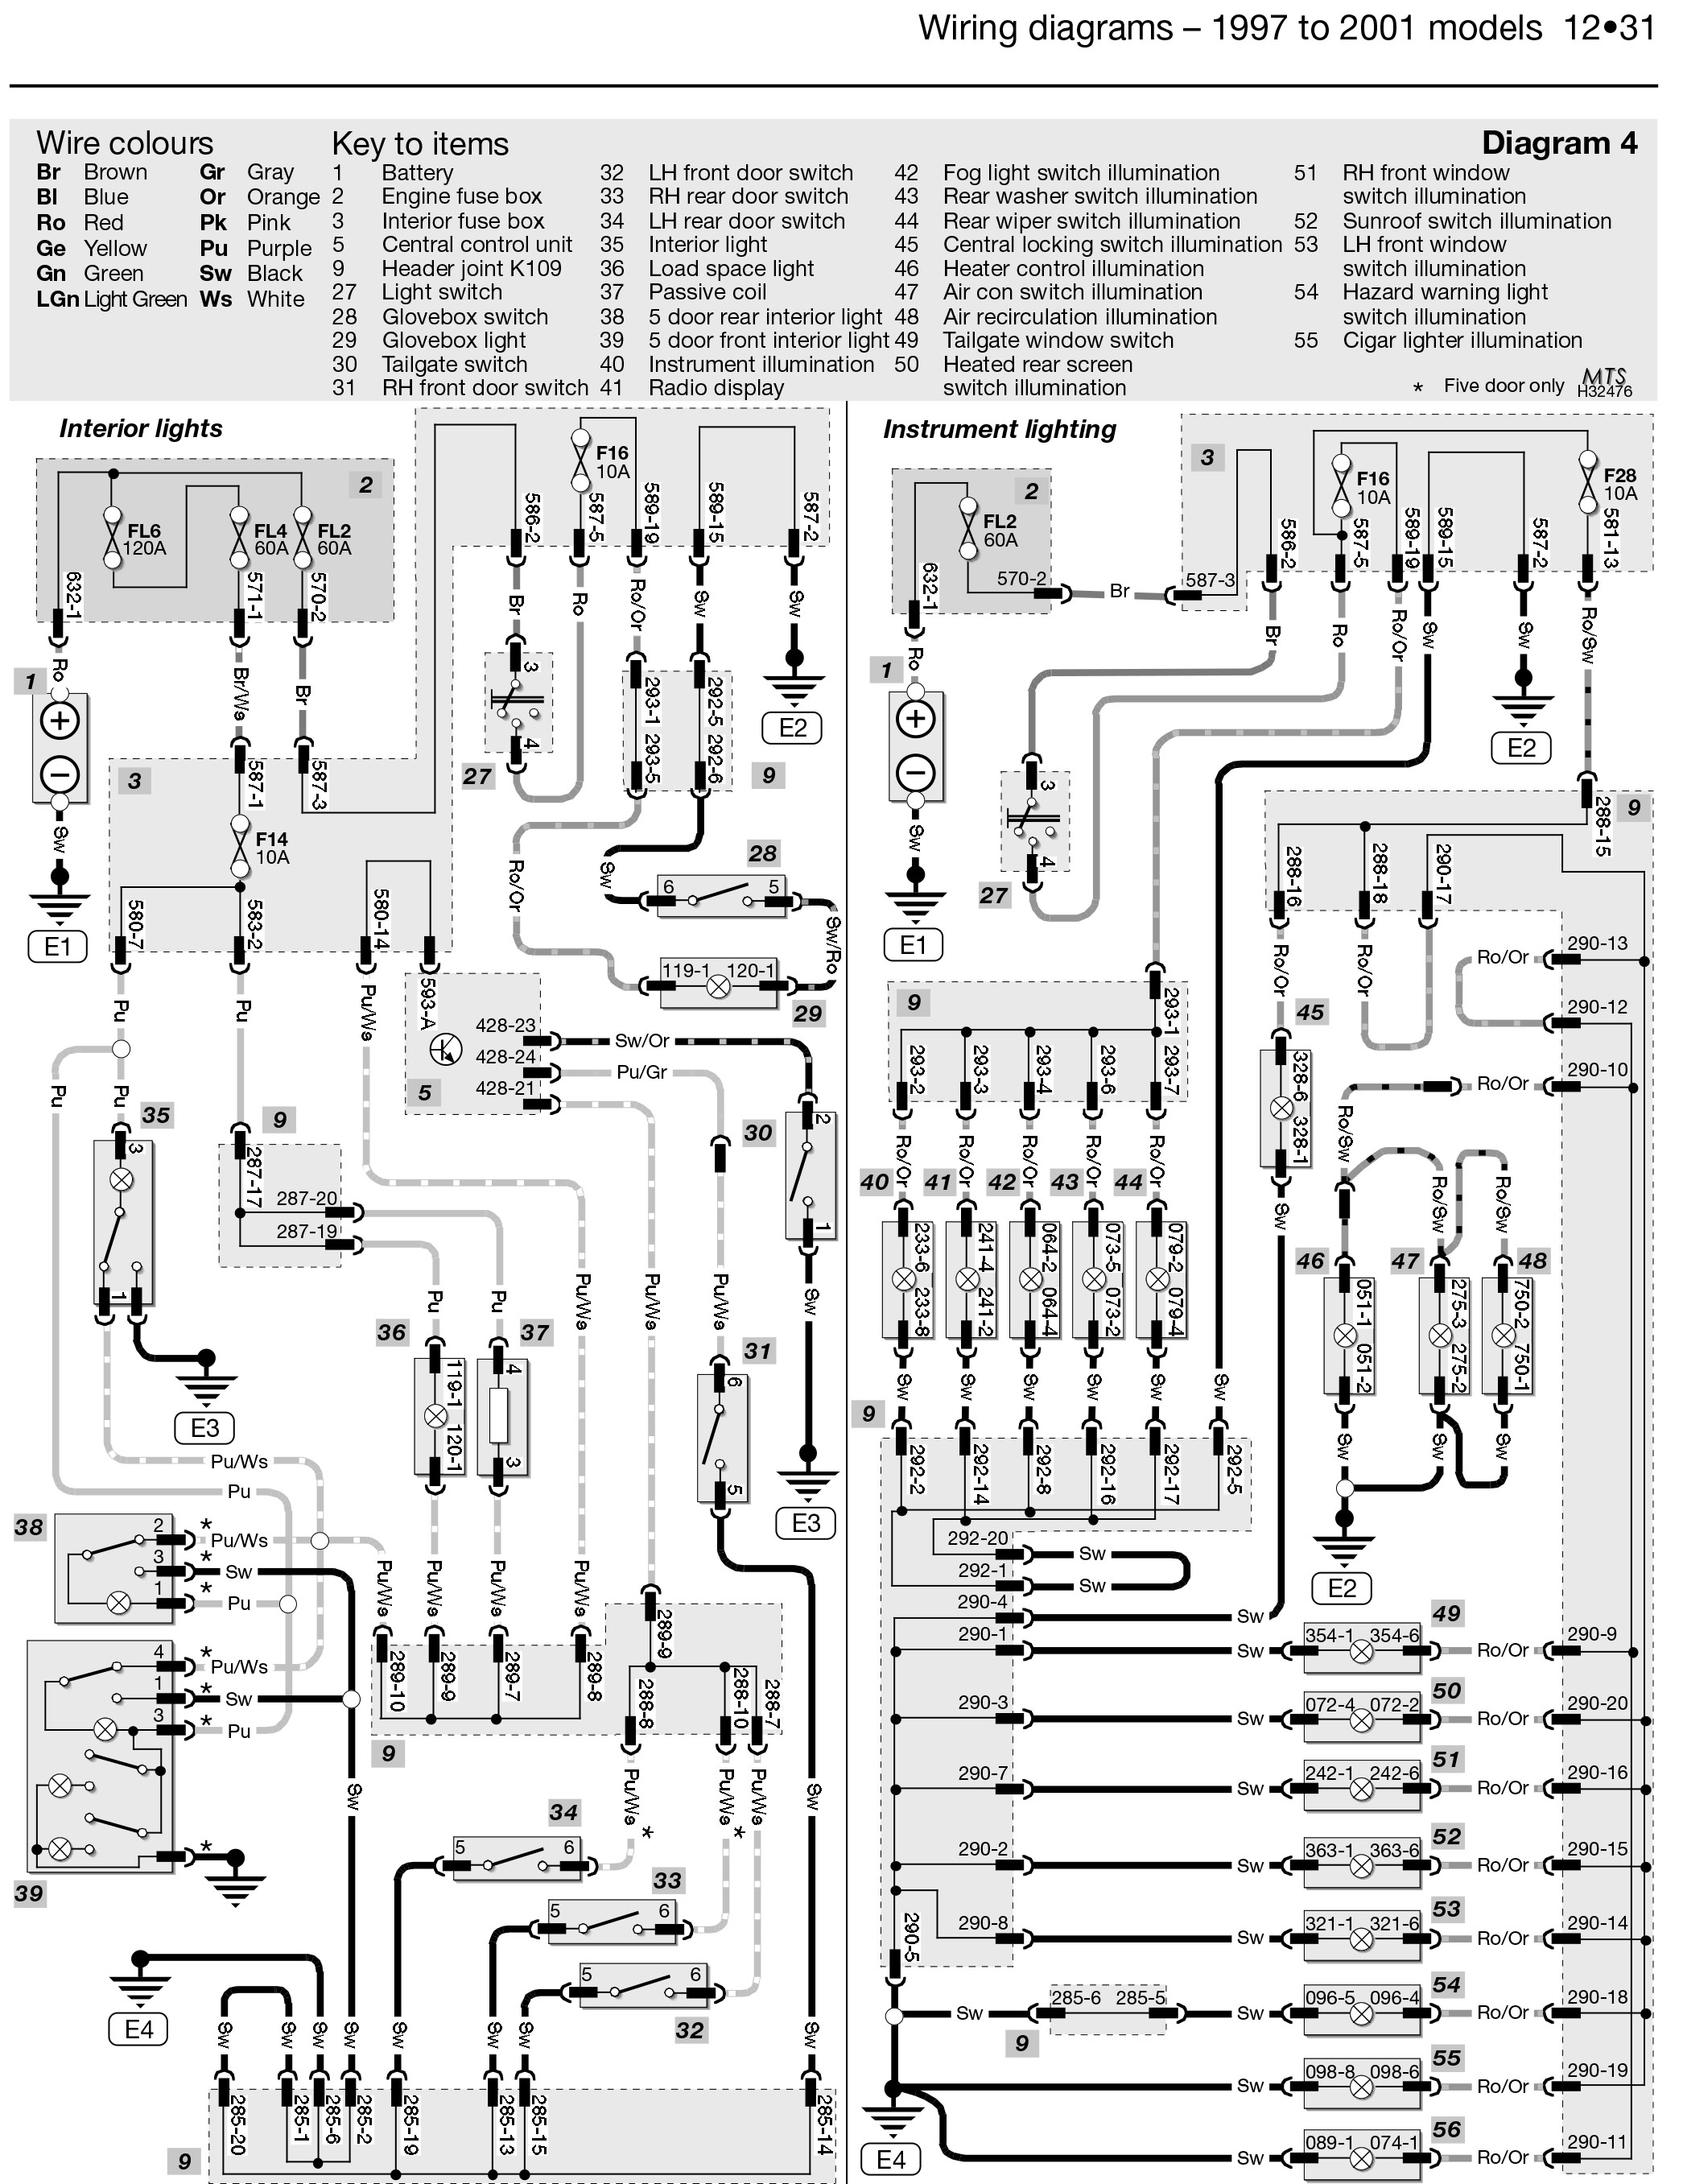 Freelander Wiring Diagram Pdf - Wiring Diagram